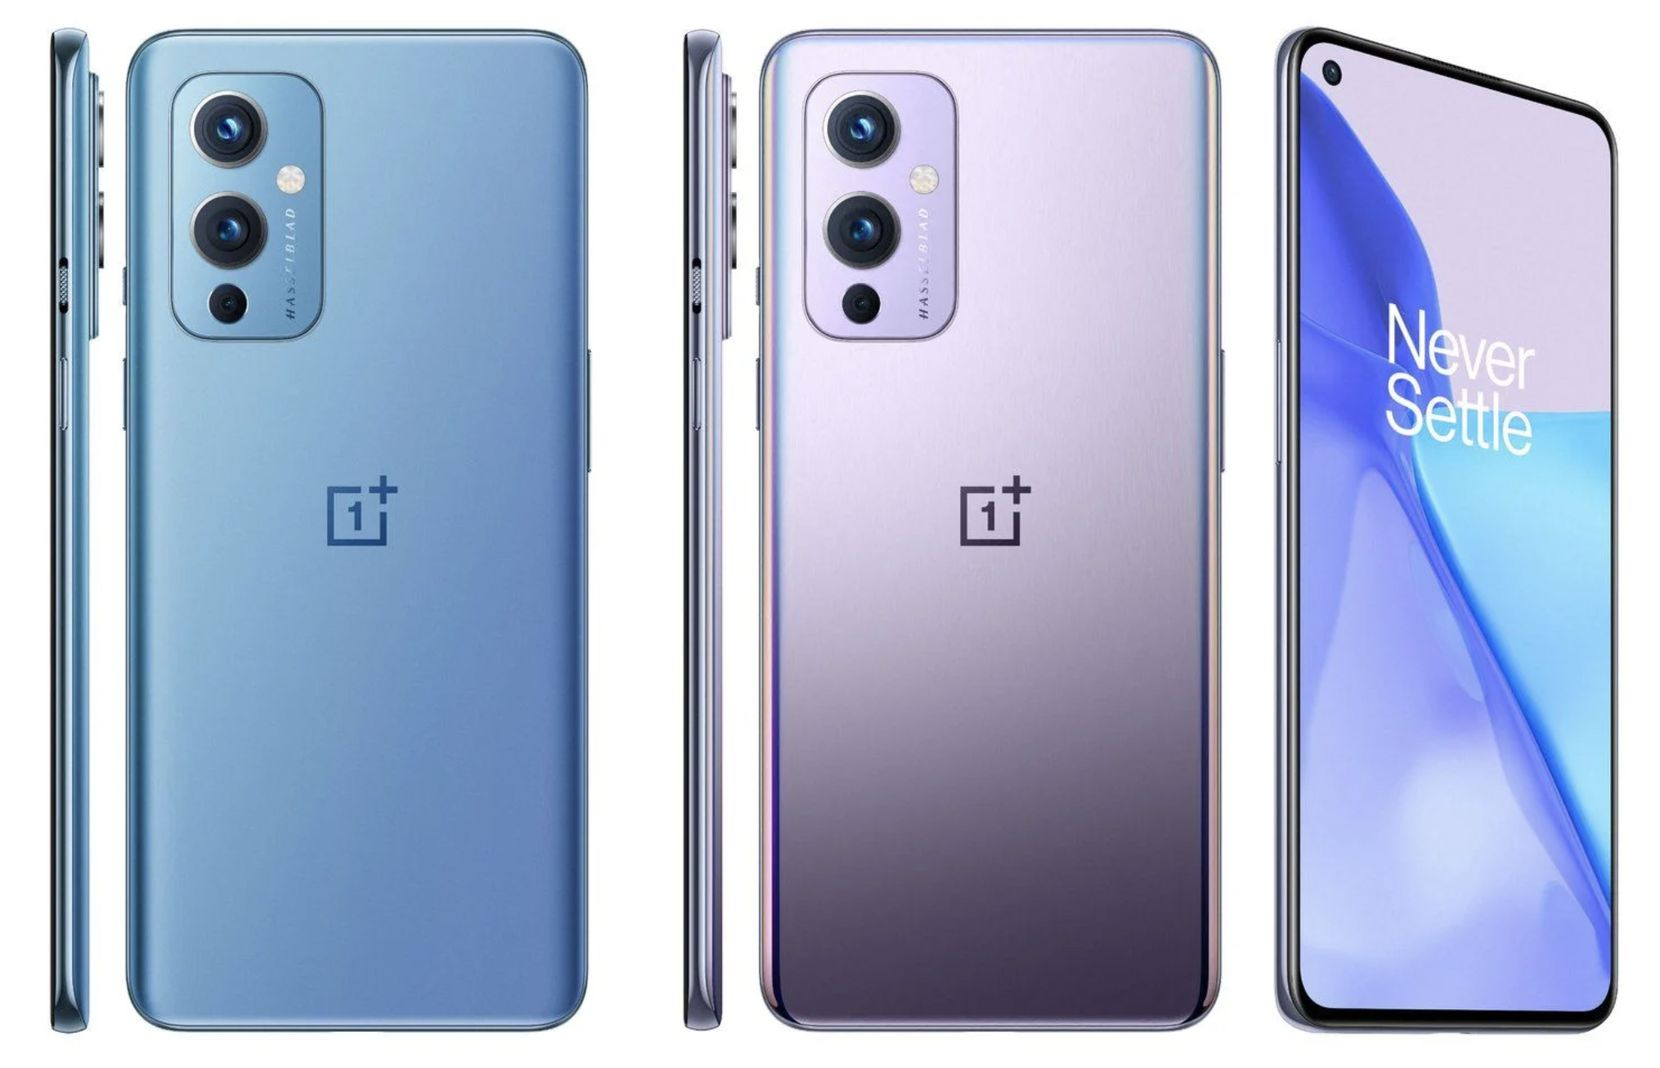 The OnePlus 9 5G